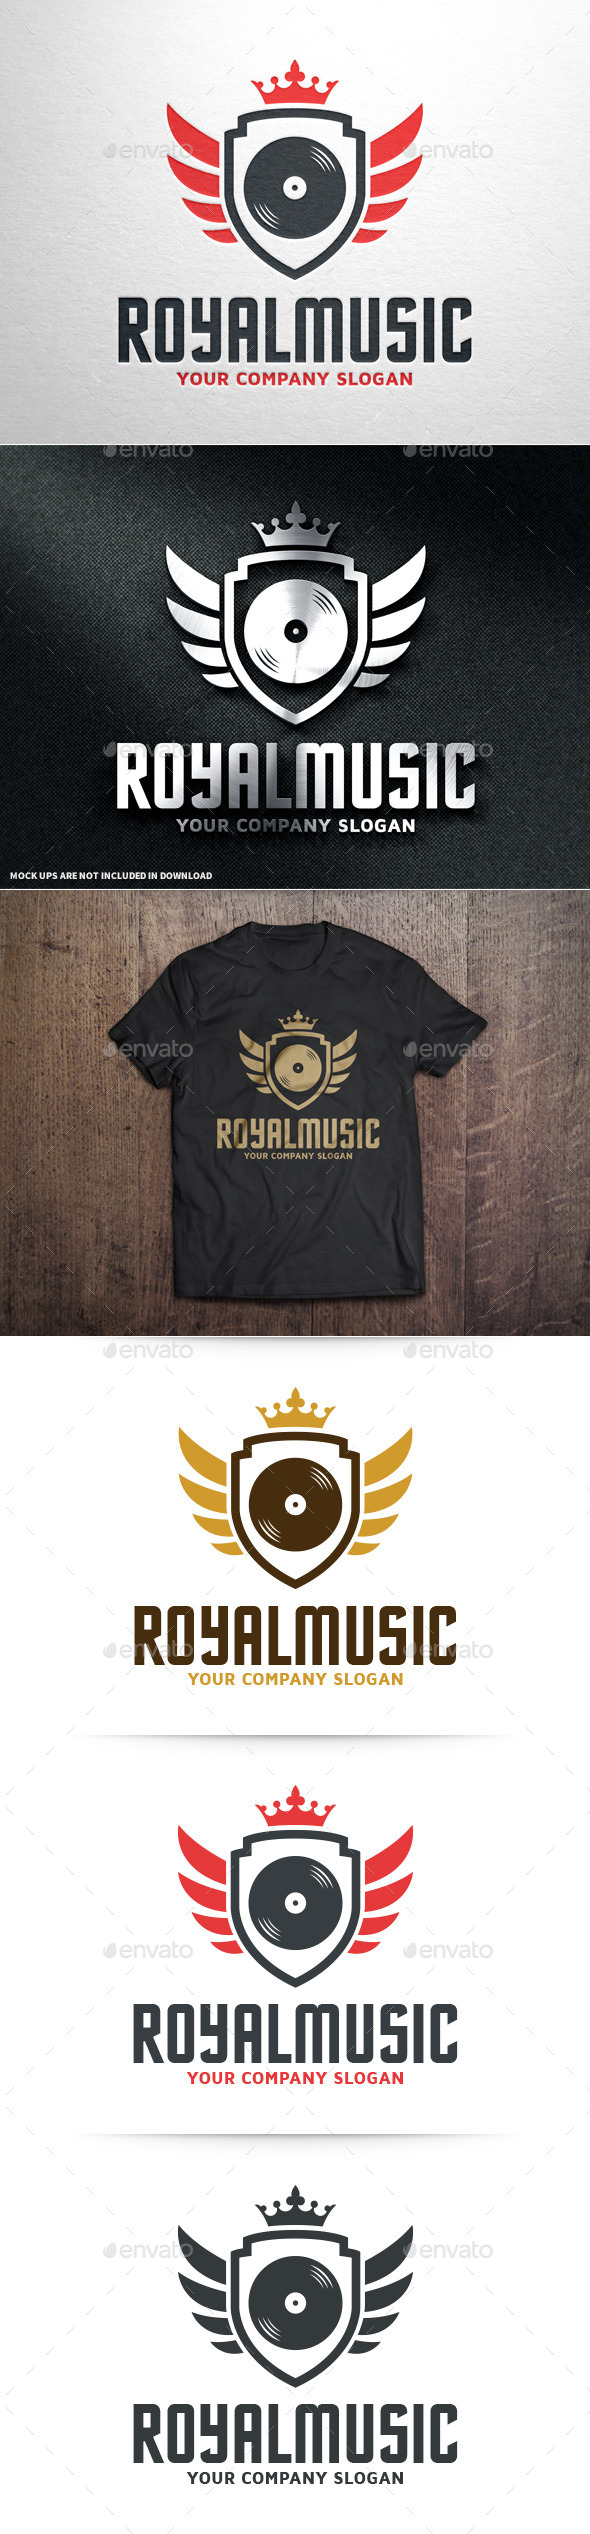 GraphicRiver Royal Music Logo Template 10677888